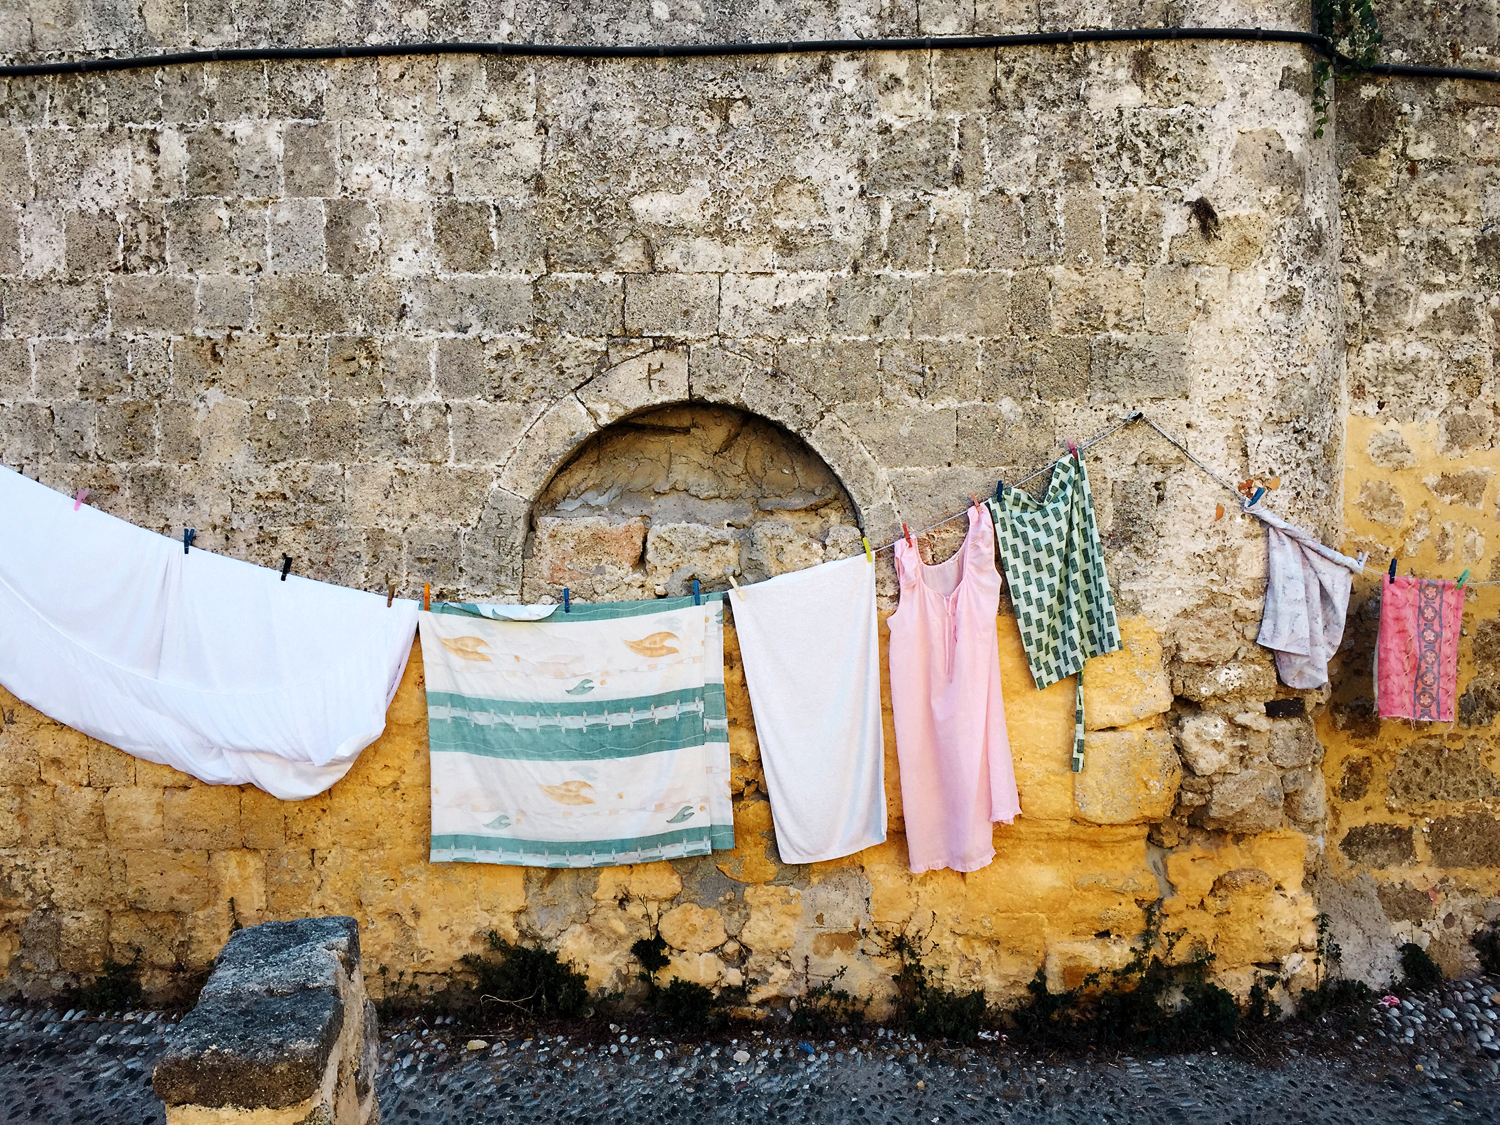 Gina Weathersby, Laundry Series 1, 2015. Photograph. Courtesy of the artist